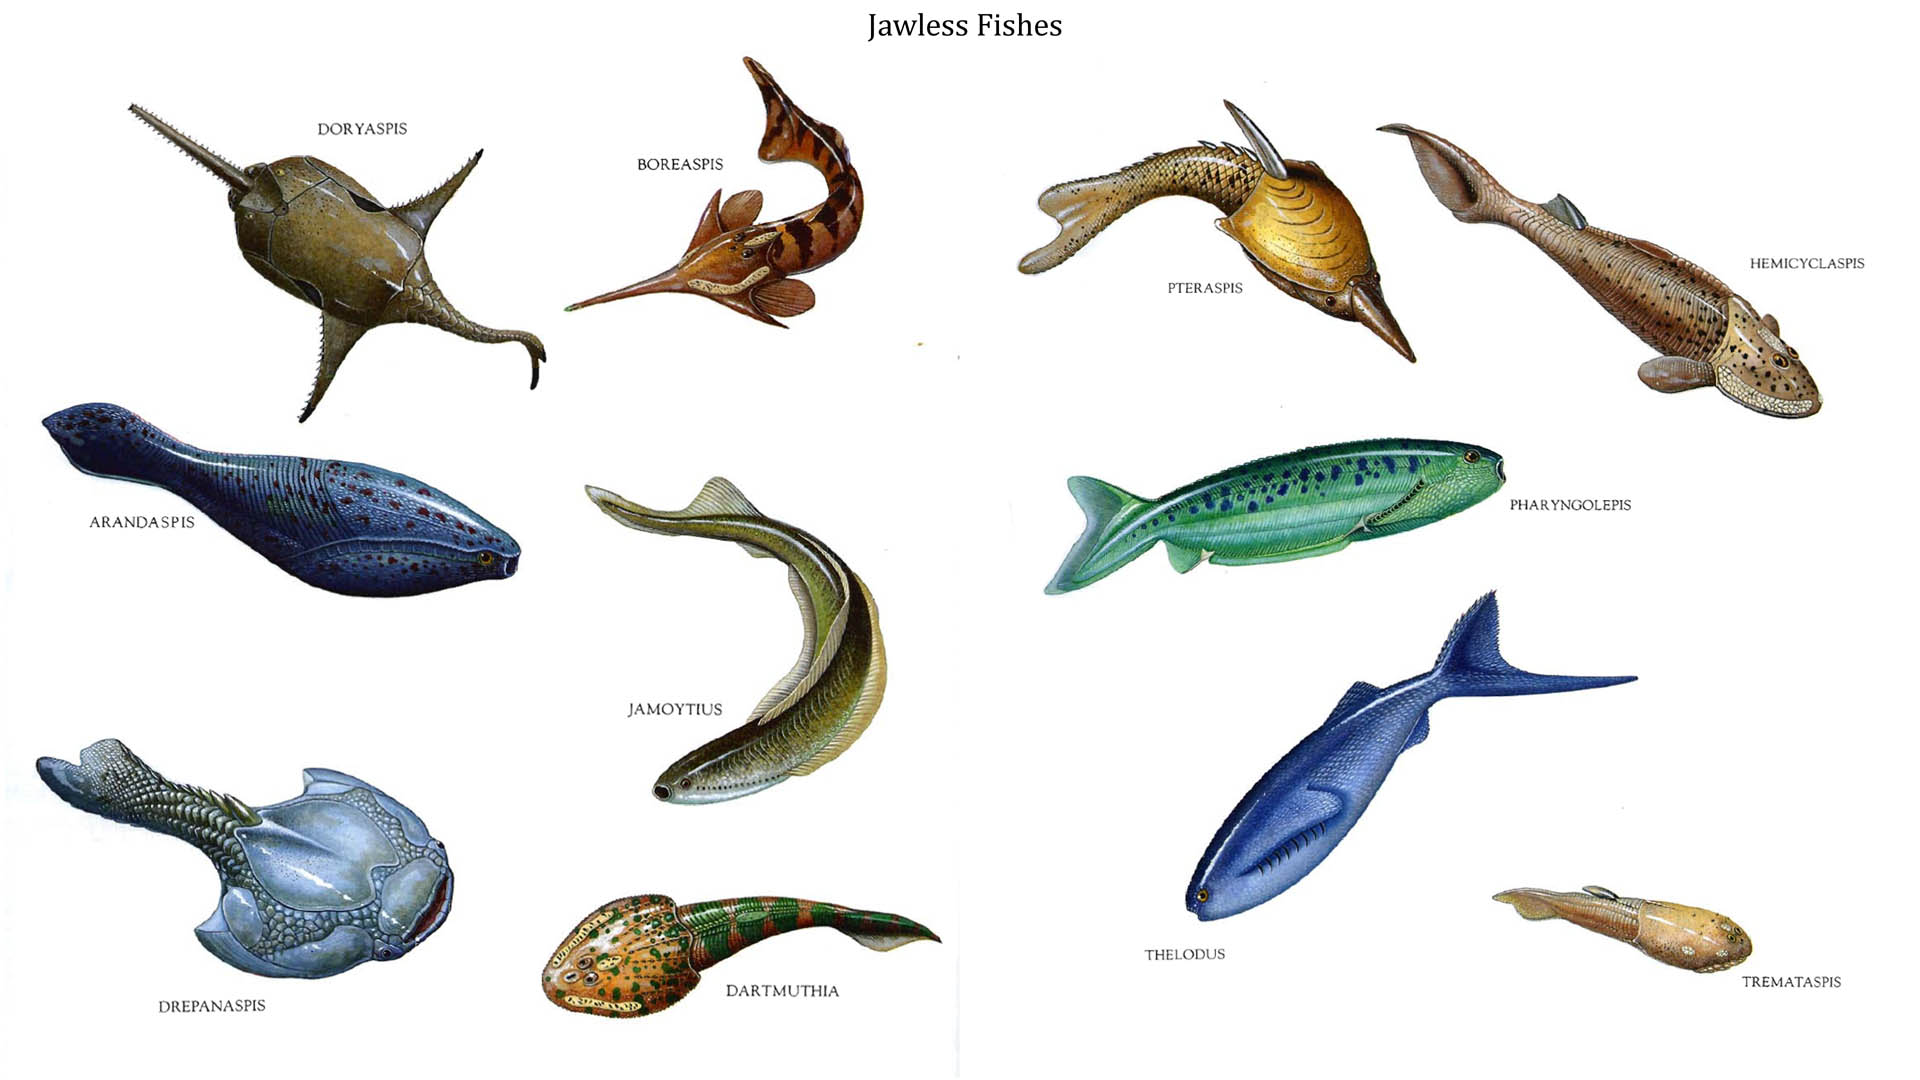 Jawless Fishes